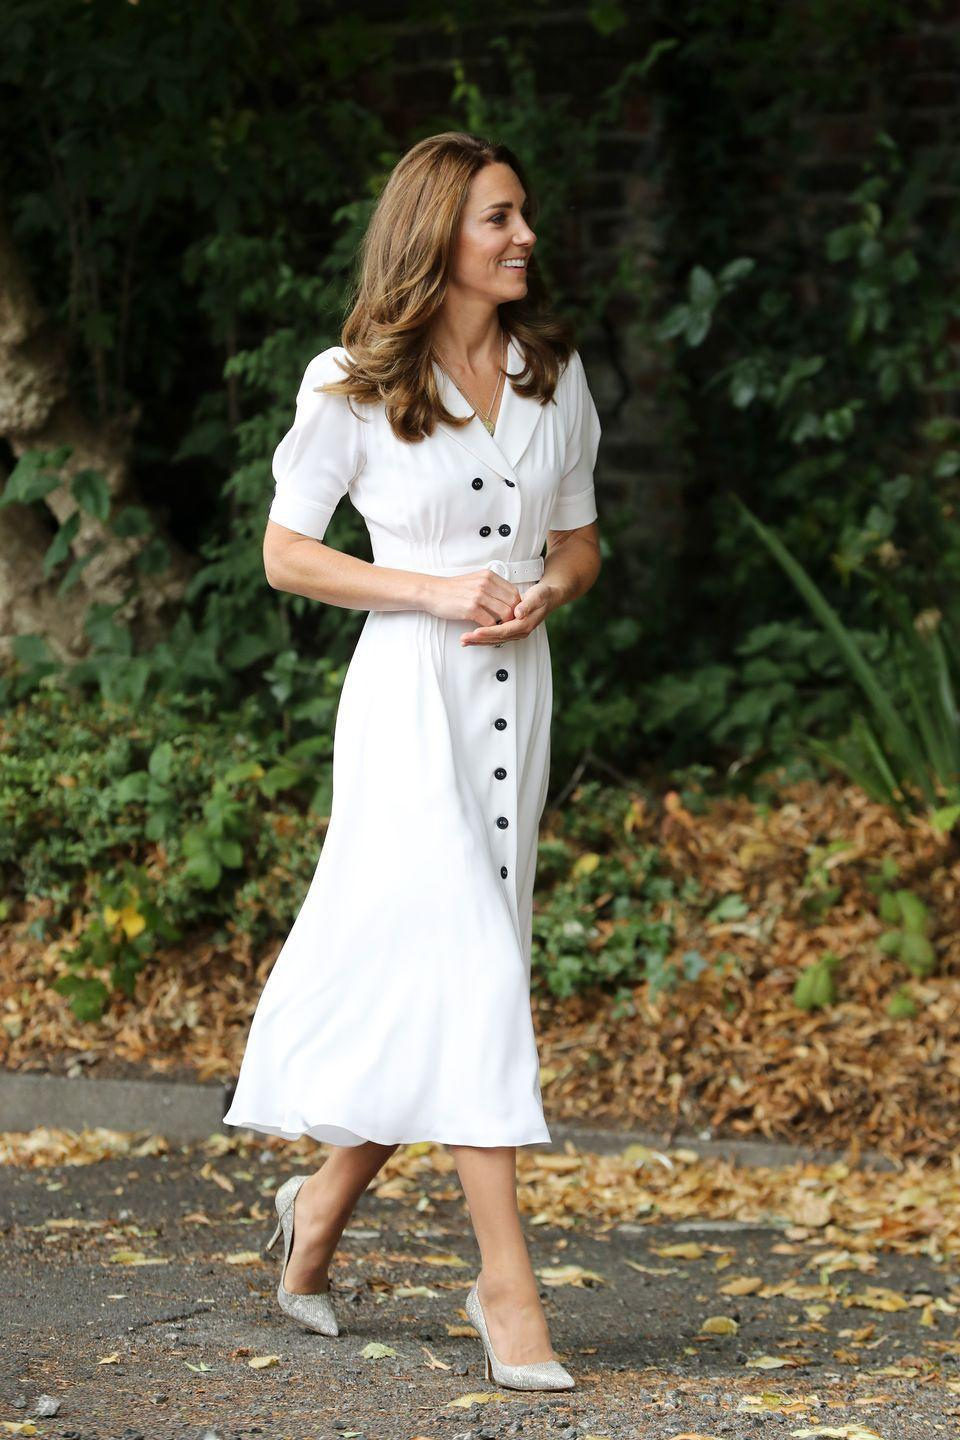 "<p>While visiting the charity, Baby Basic UK & Baby Basics Sheffield, Kate re-wore a crisp, white shirtdress by Suzannah, which she previously sported for <a href=""https://www.townandcountrymag.com/society/tradition/a28258730/kate-middleton-white-dress-wimbledon-2019/"" rel=""nofollow noopener"" target=""_blank"" data-ylk=""slk:last year's Wimbledon match"" class=""link rapid-noclick-resp"">last year's Wimbledon match</a>. When the Duchess entered the charity, she donned a <a href=""https://www.townandcountrymag.com/society/tradition/g32616136/queen-elizabeth-princess-charlotte-royal-family-liberty-of-london-print-photos/"" rel=""nofollow noopener"" target=""_blank"" data-ylk=""slk:liberty print"" class=""link rapid-noclick-resp"">liberty print</a> face mask. </p>"